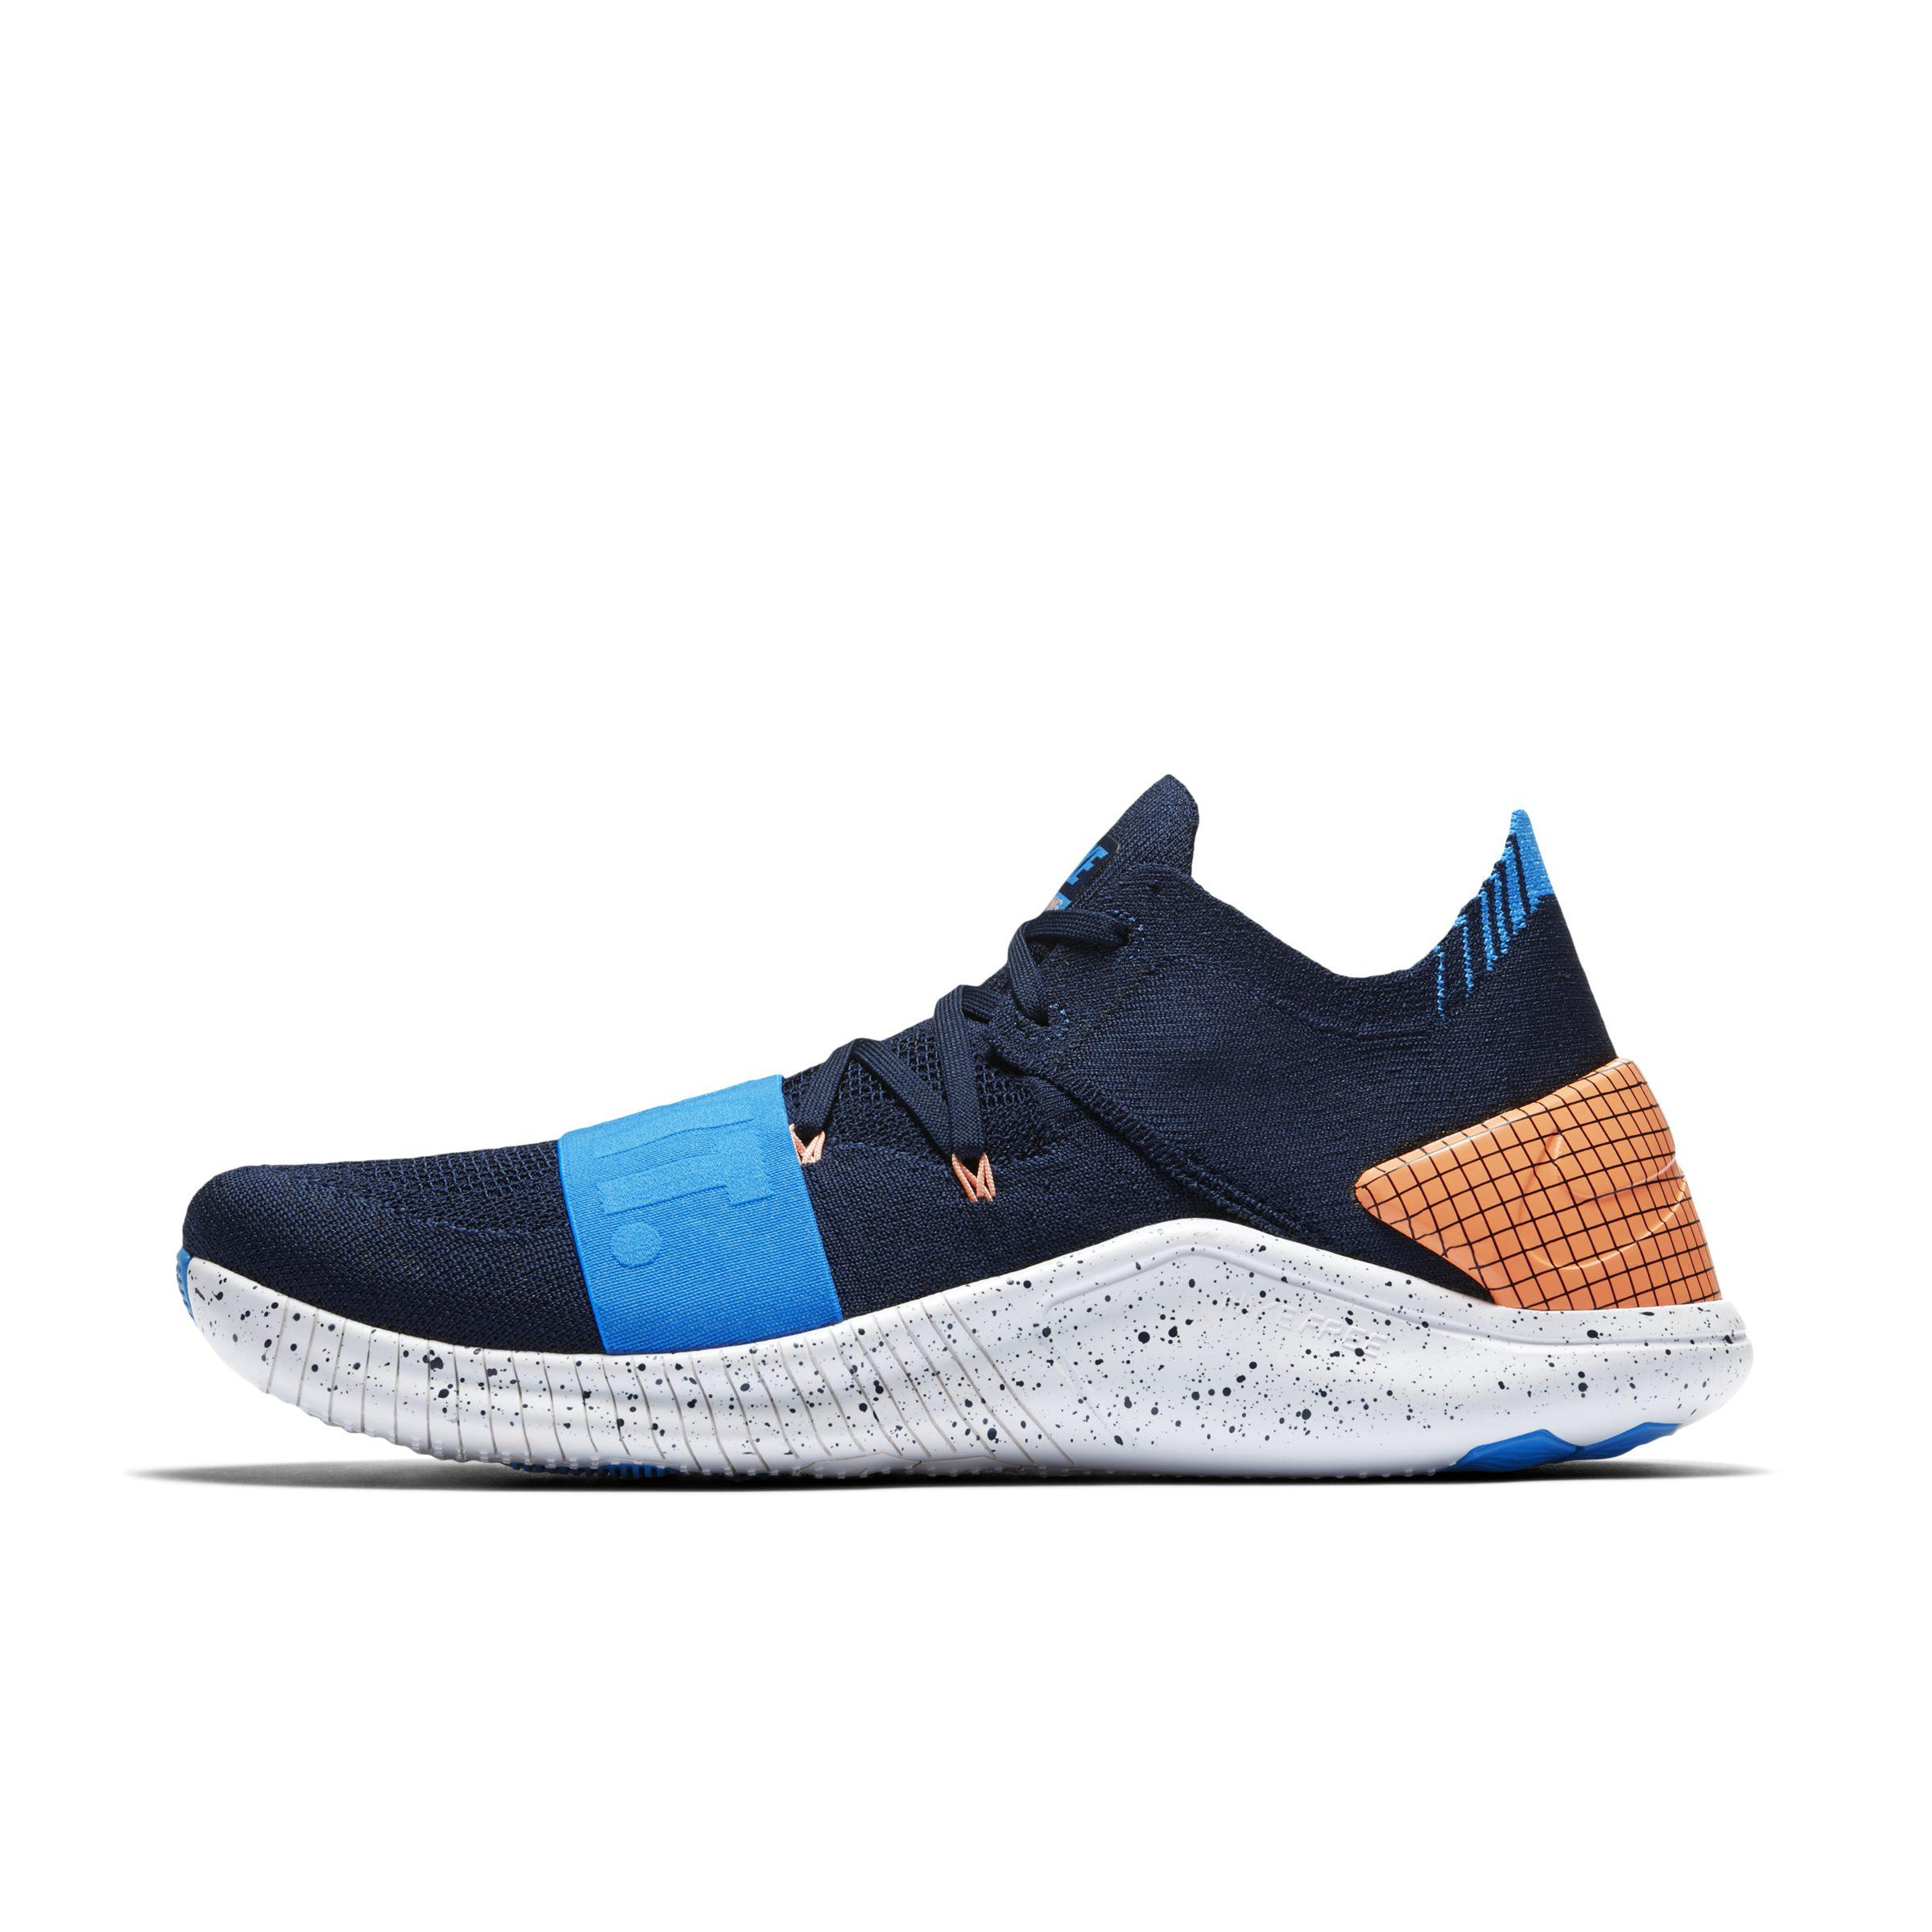 229c308bfe17a Nike Free Tr Flyknit 3 Neo Training Shoe in Blue - Lyst